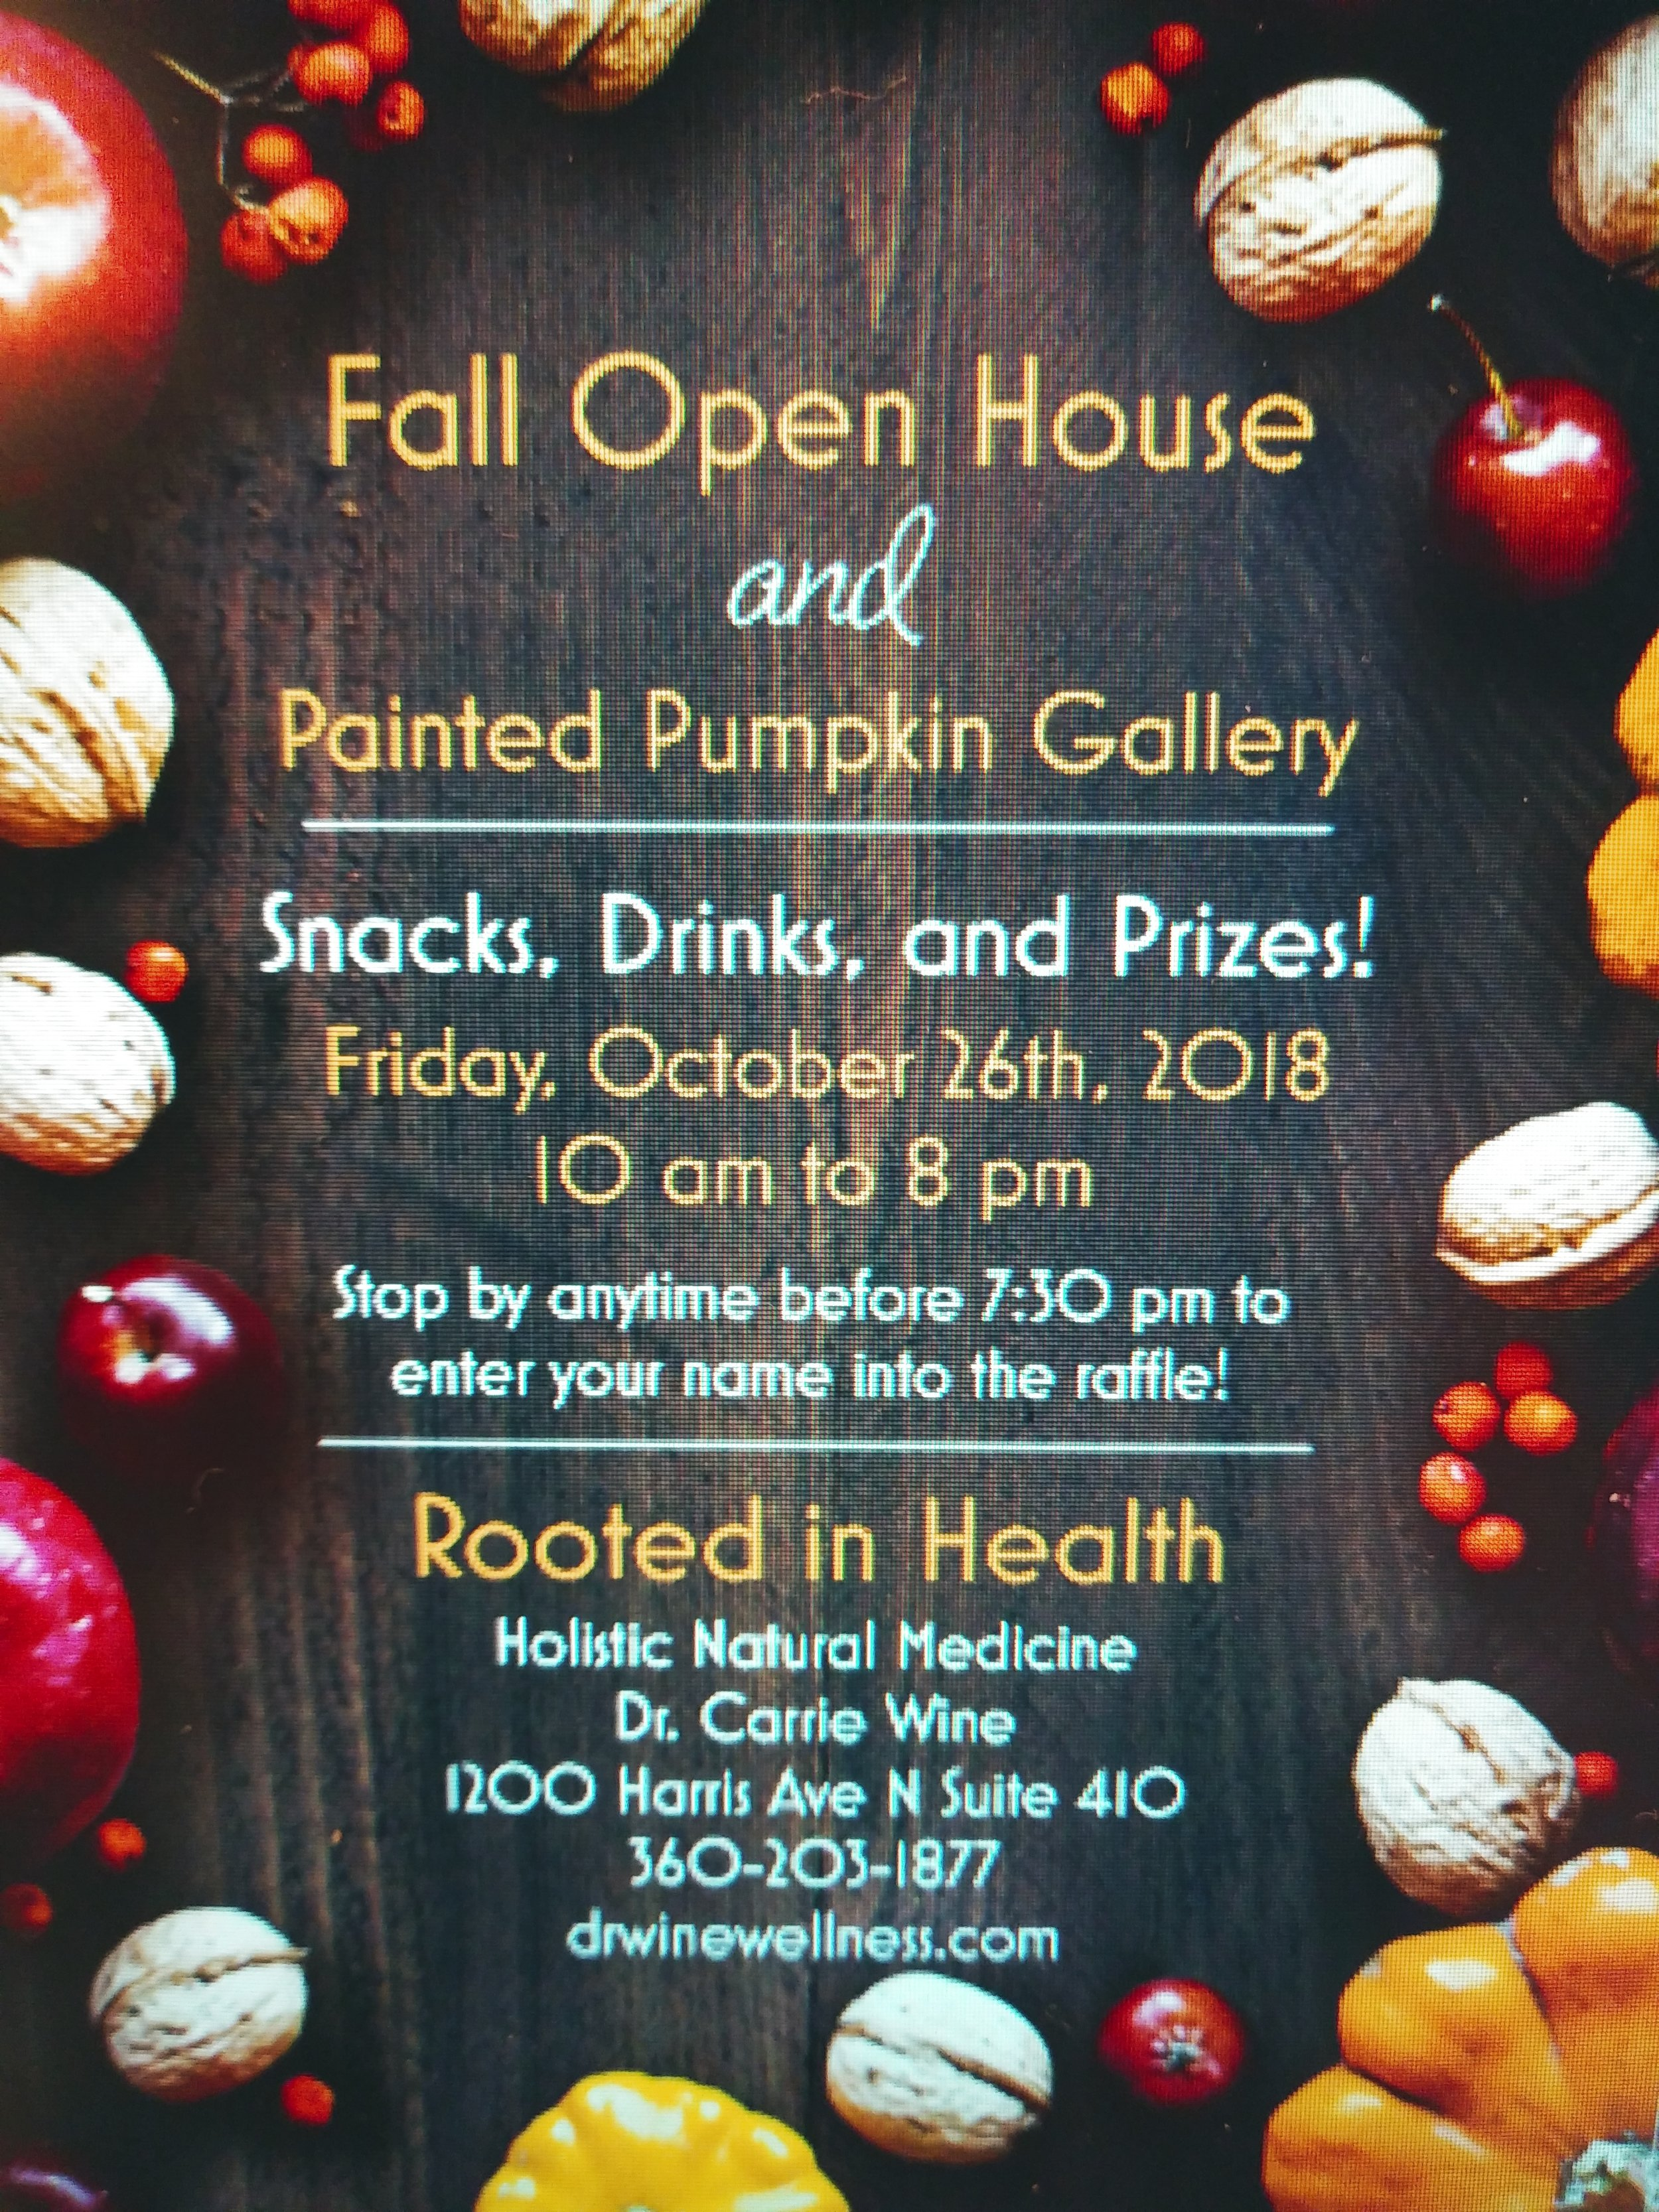 """Come join me on Friday, October 26th for my Fall Open House and Painted Pumpkin Gallery! There is a prize for the most voted on pumpkin as well as a raffle for all those who stop by and say """"hi."""" The 4th Friday Art Walk is also going on so please get out there and support our local artists and businesses!  Have a pumpkin you want to submit? I am still taking submissions up to 10 on Friday! The pumpkin will only stay there for the day, you are welcome to take it home after the event. The prize is a $50 gift certificate to your favorite art or artisan shop! Contact me by email, phone or social media to let me know about your submission."""